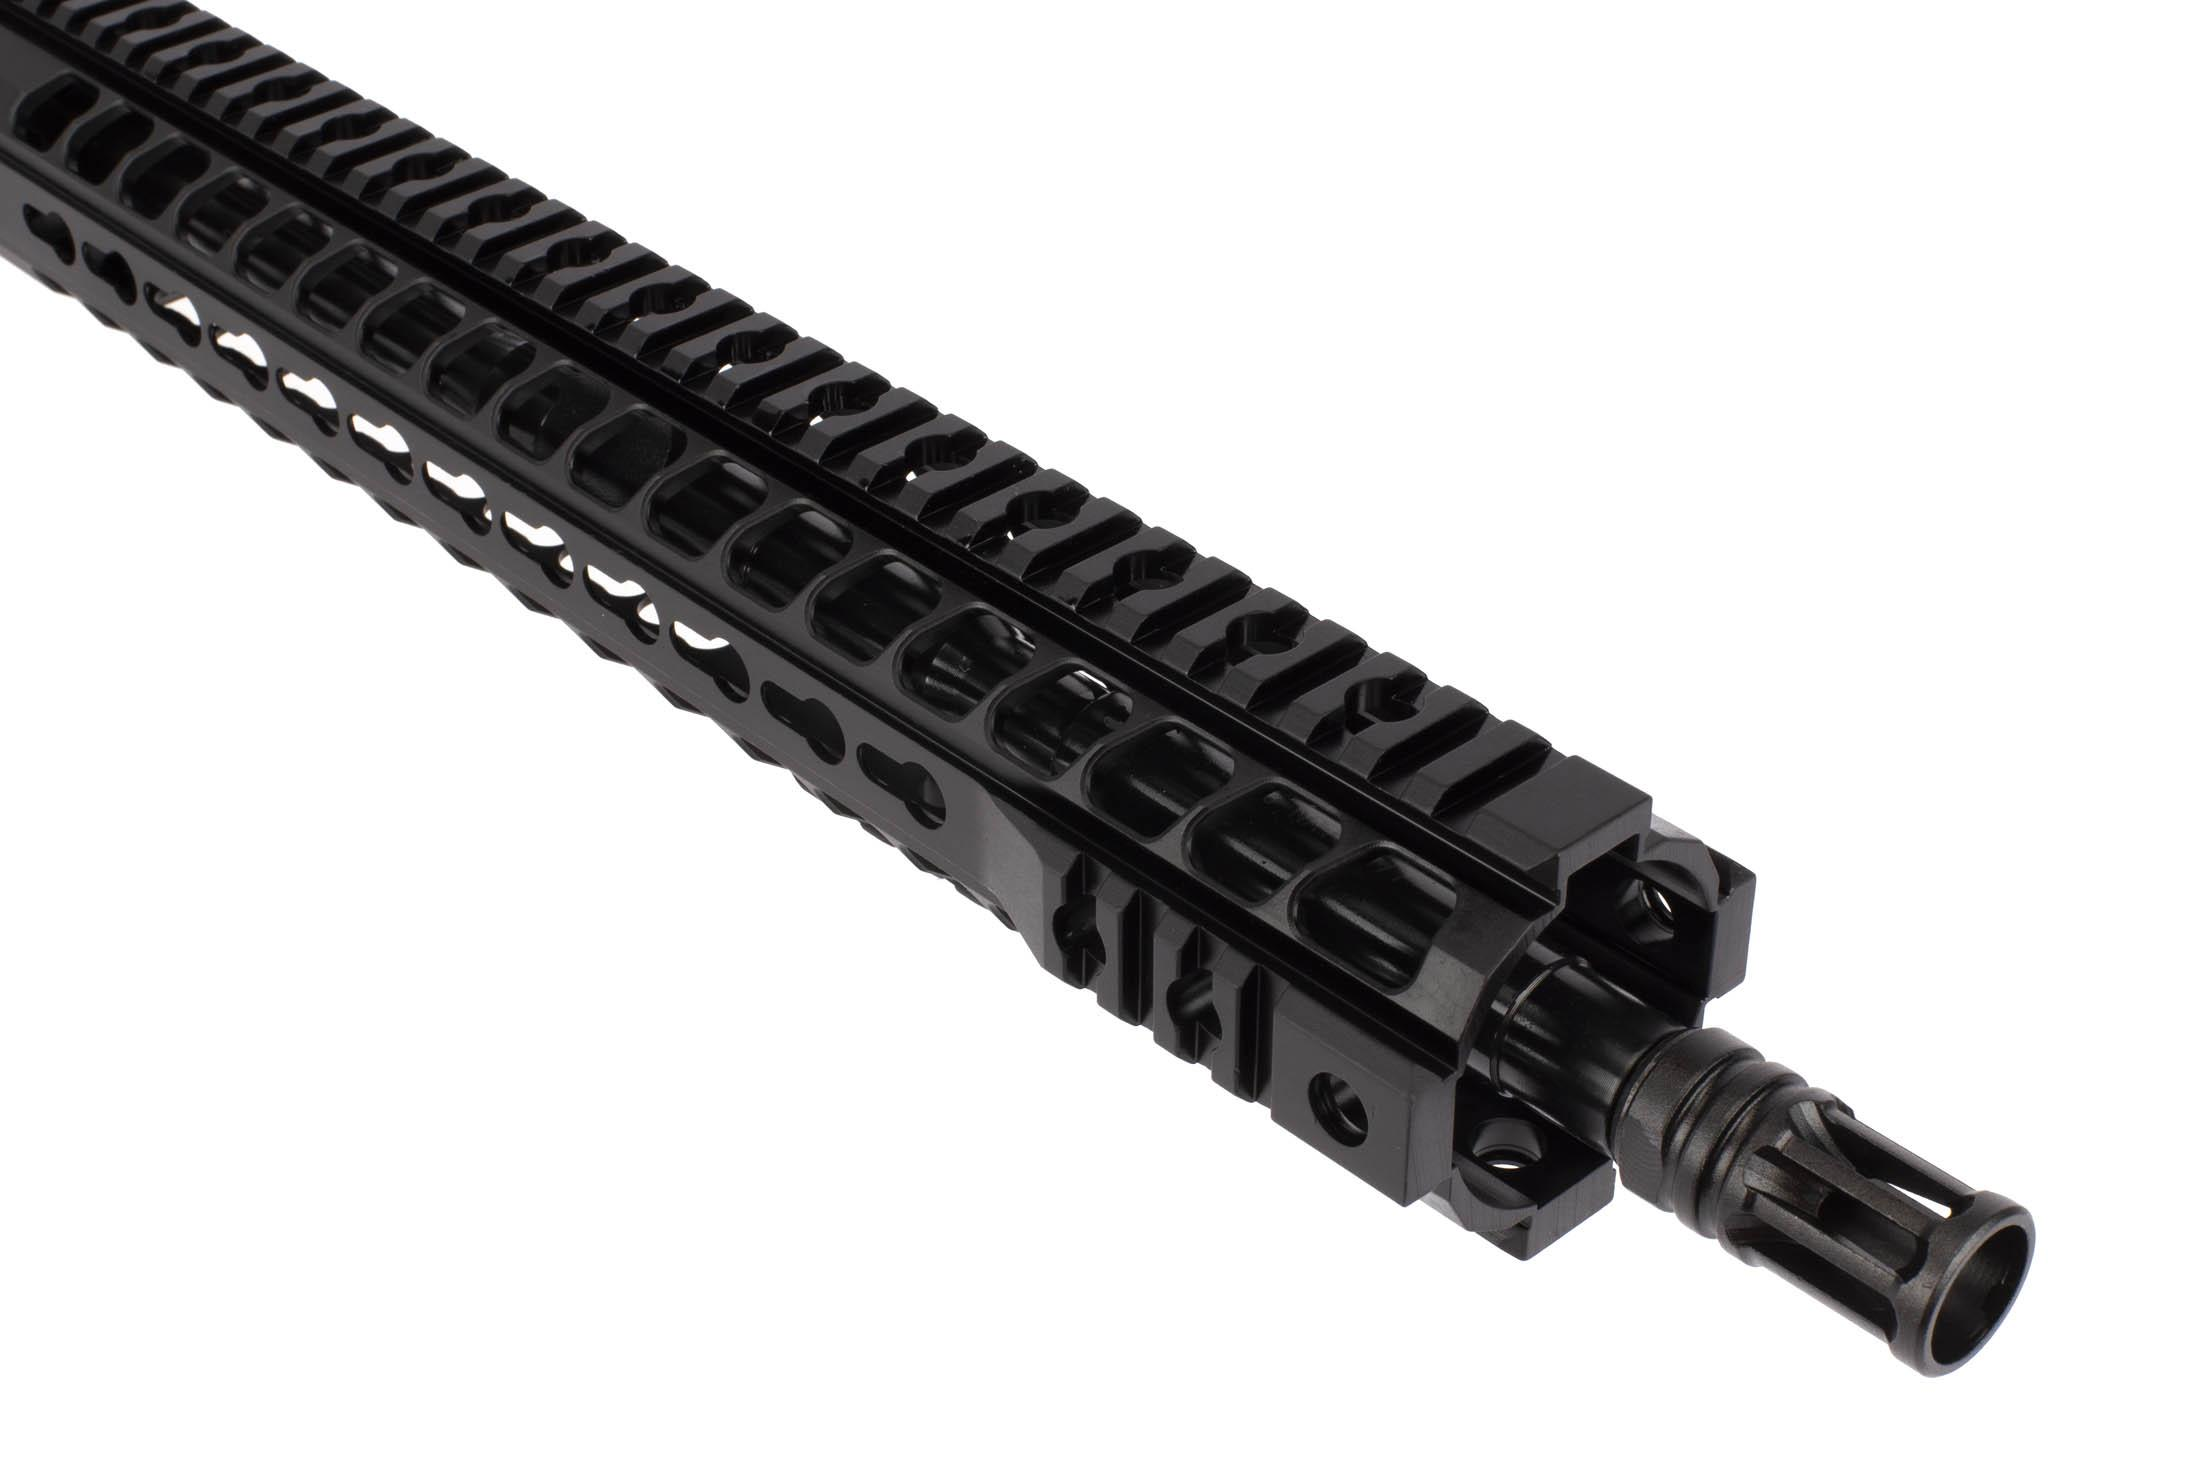 Radical Firearms 16in 5.56 NATO complete AR-15 upper with M4 contour barrel, A2 flash hider, and 1/2x28 threading